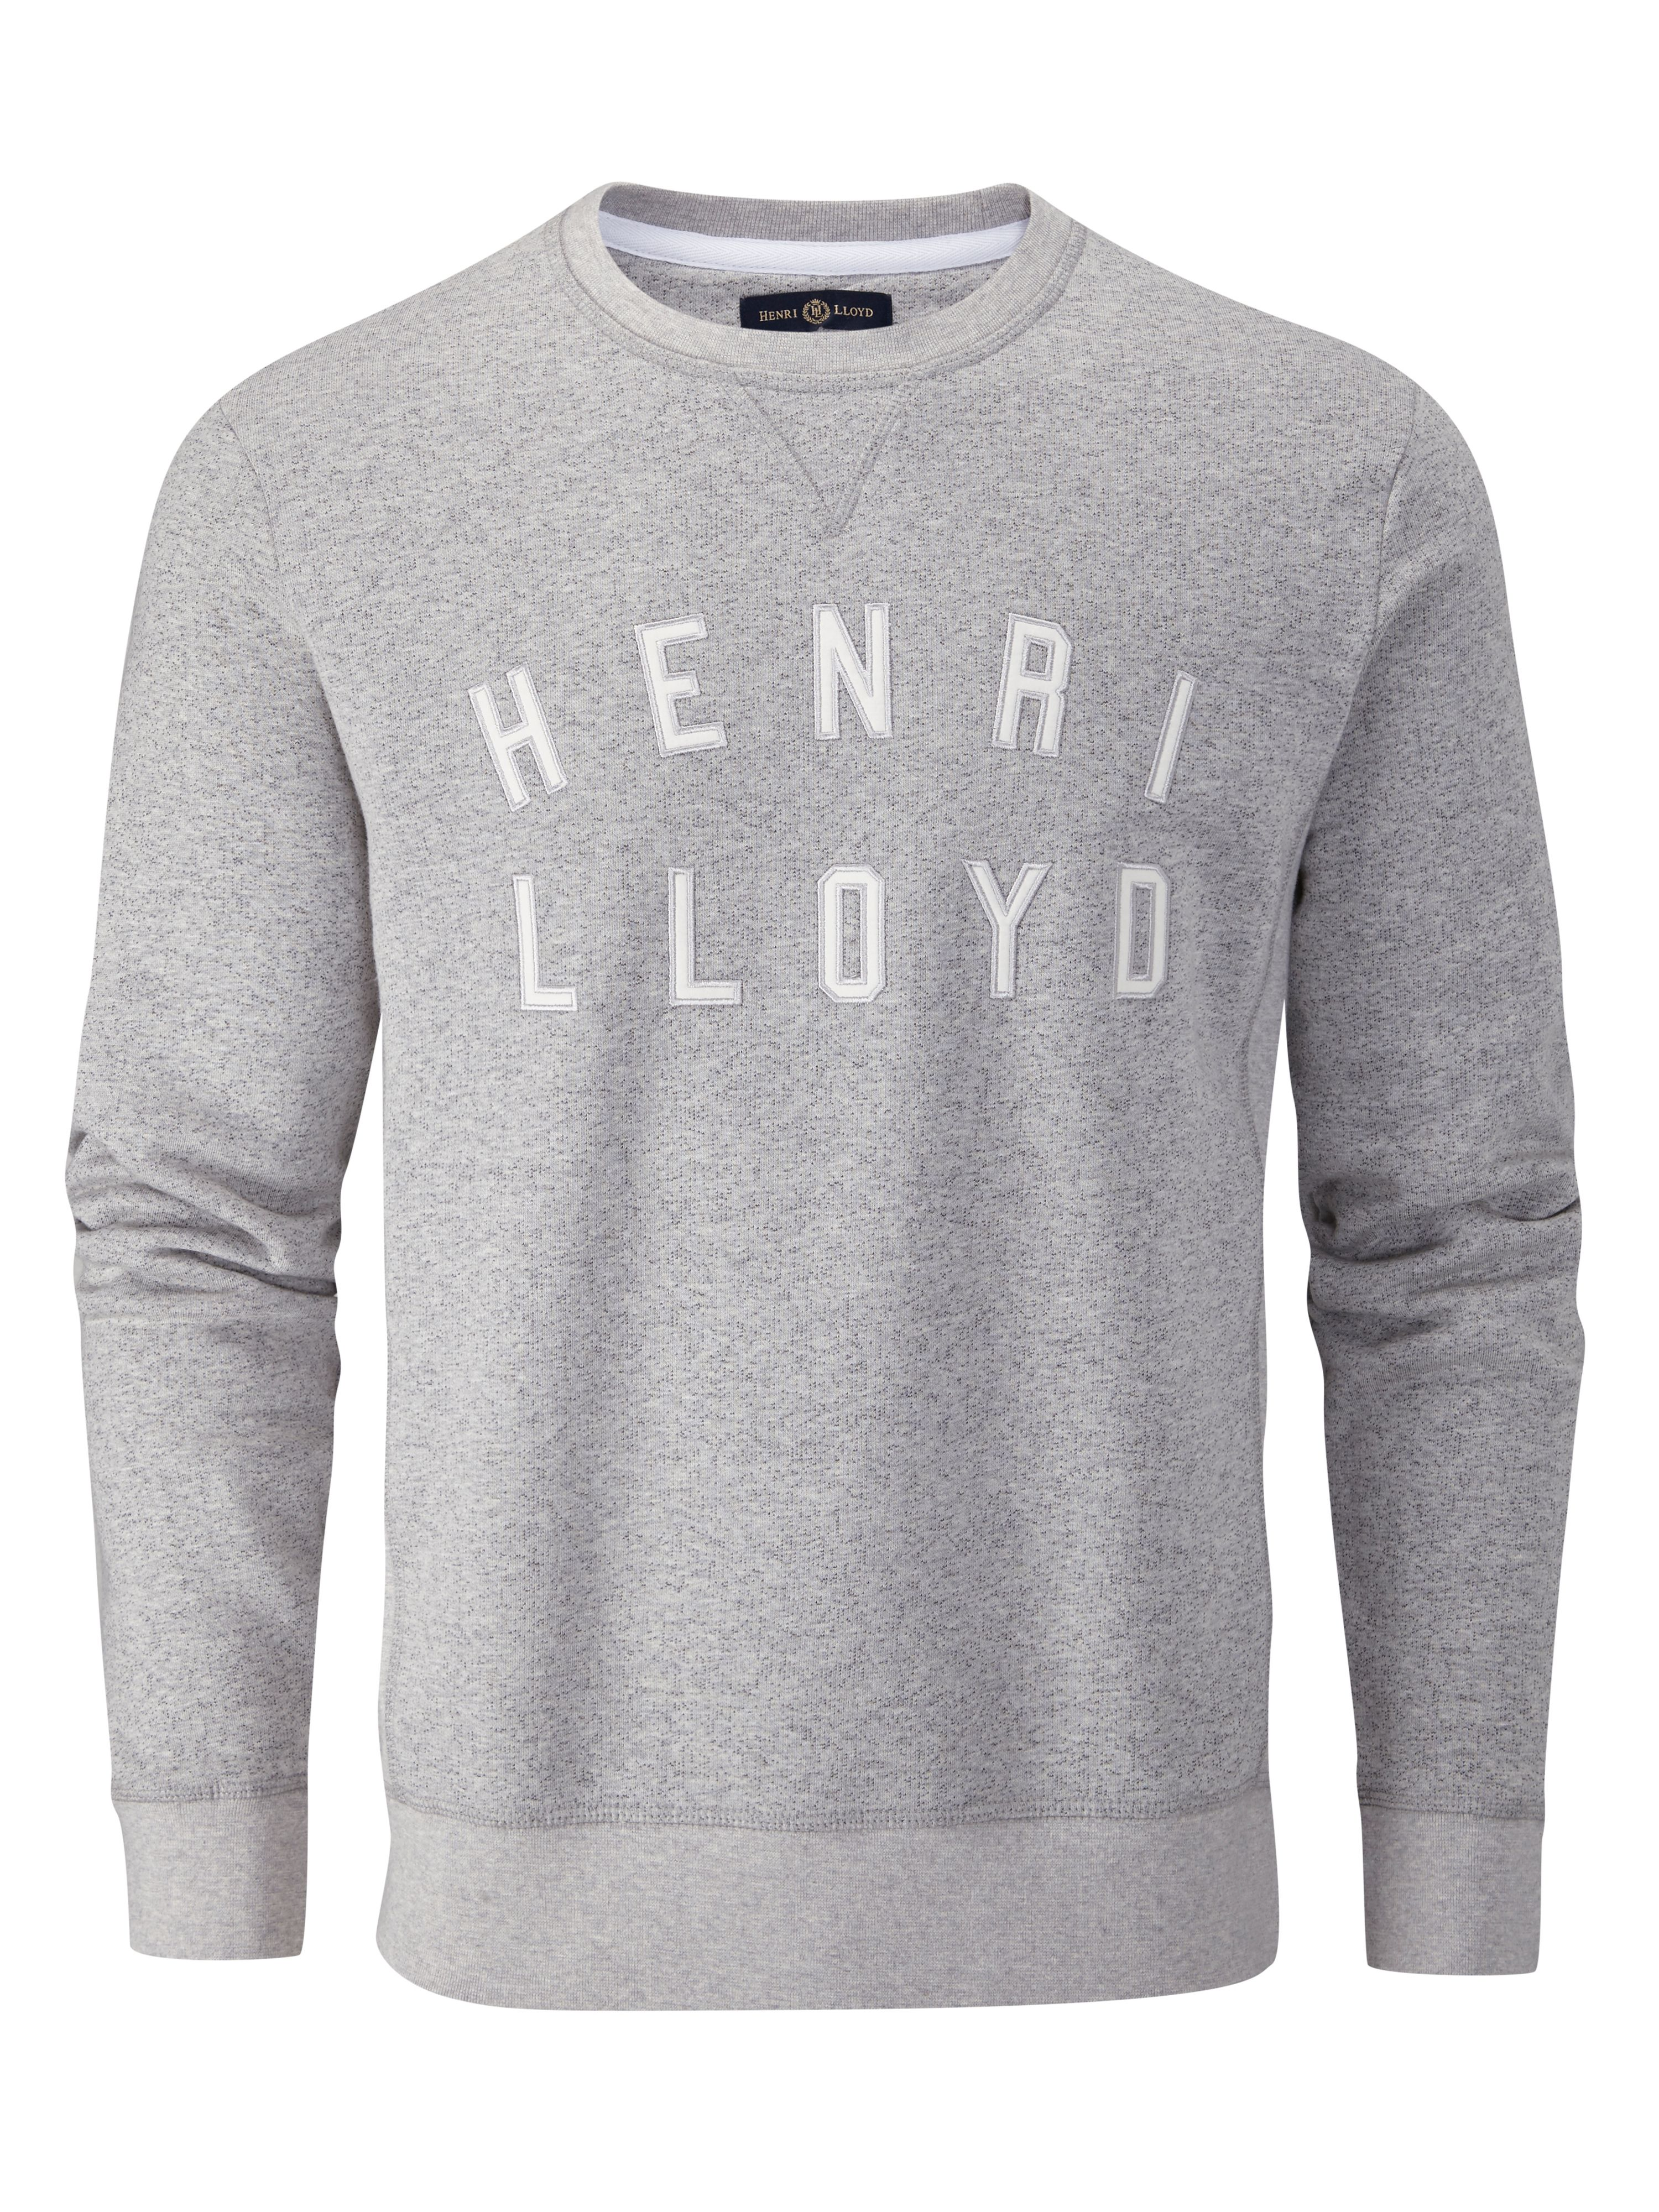 Men's Henri Lloyd Adderly Crew Sweat, Grey Marl